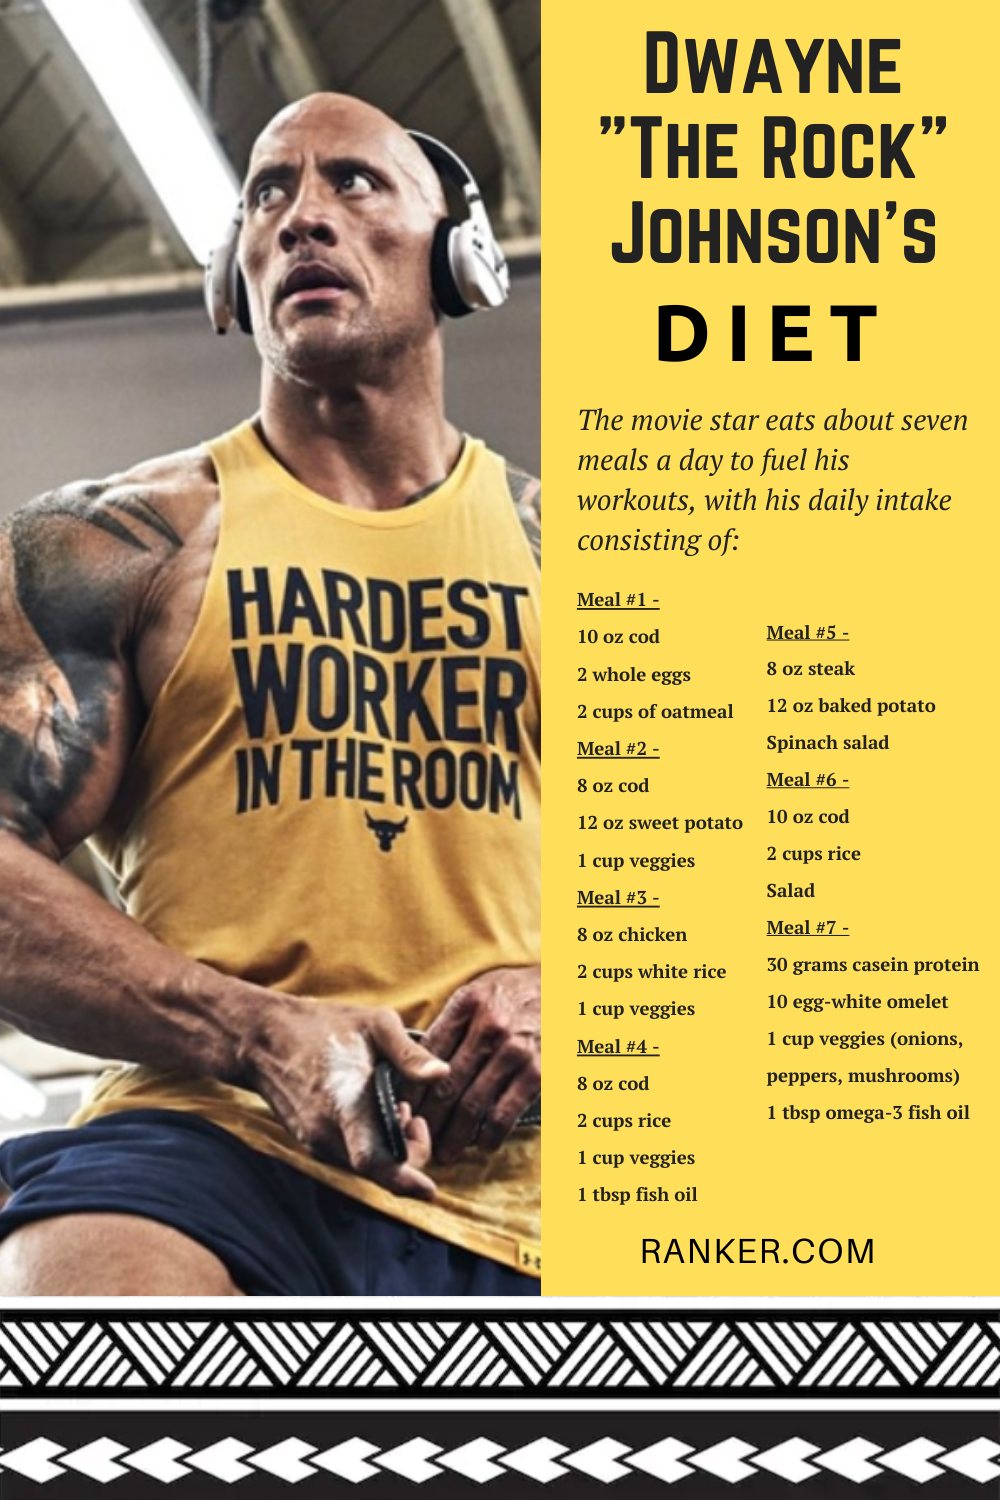 Crazy Diets Of Wrestlers And Other Athletes Dwayne The Rock Johnson The Rock Dwayne Johnson Workout Dwayne Johnson Diet Dwayne Johnson Workout